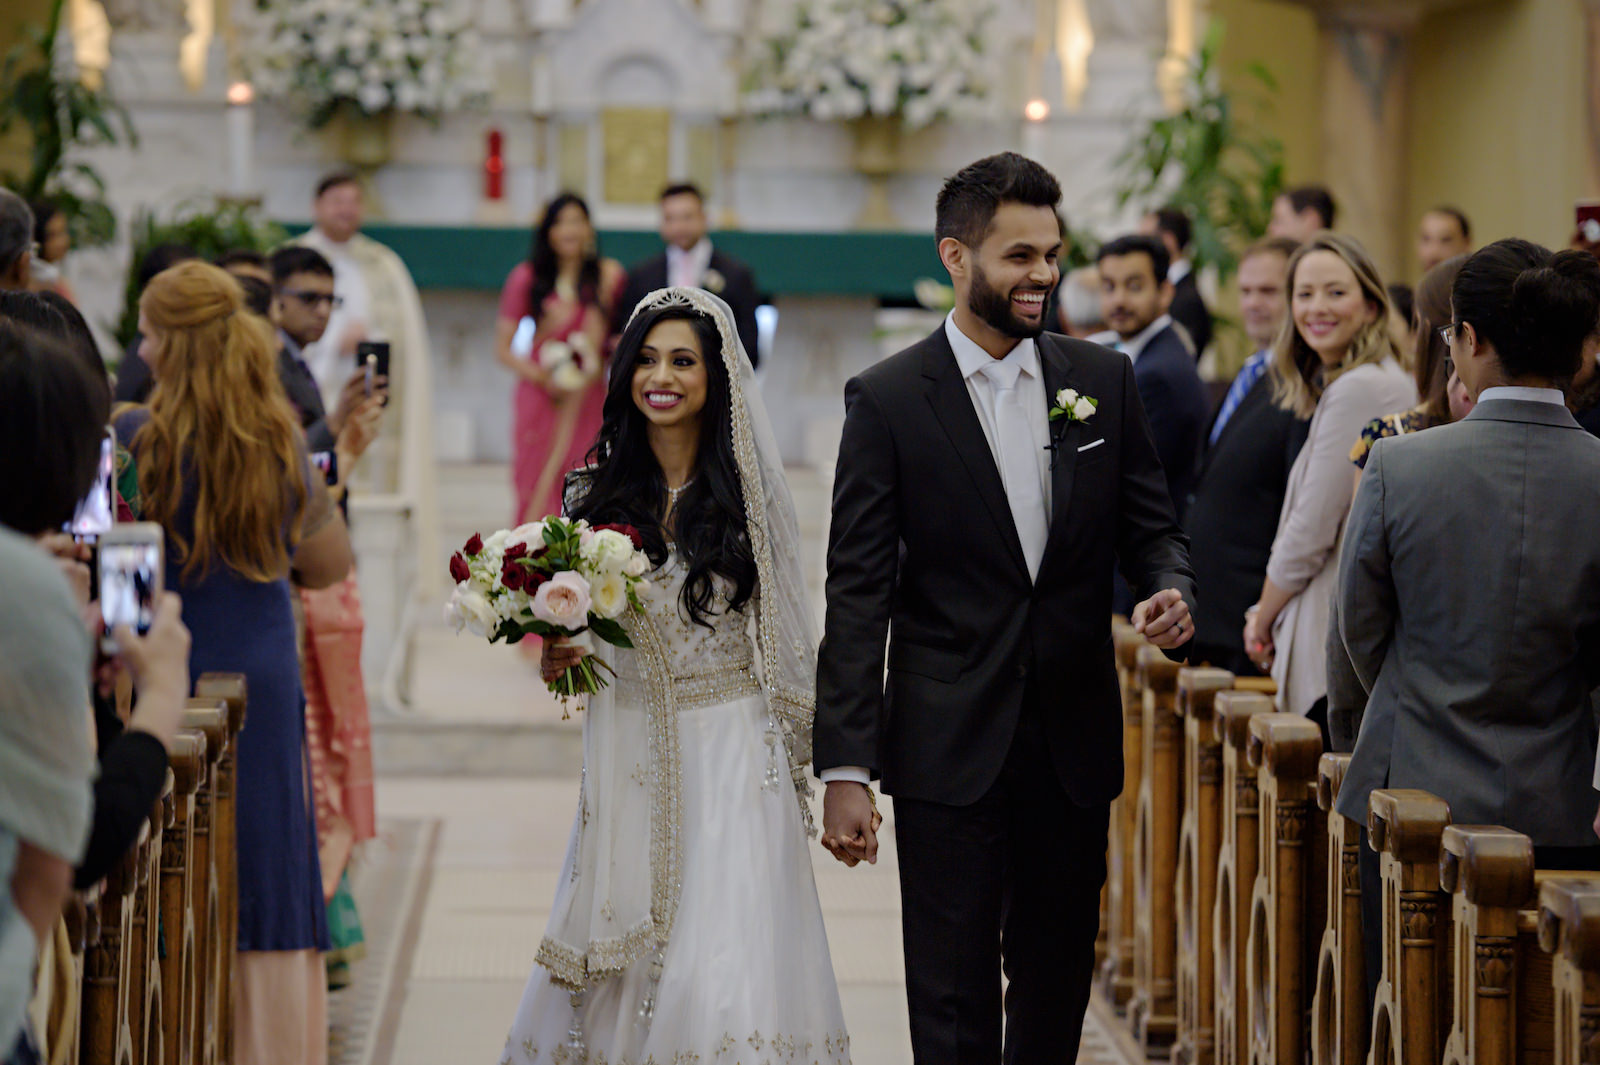 Indian Tampa Bay Bride and Groom Walking Down the Aisle | Indian Catholic Wedding | Florida Multicultural Wedding Ceremony | Catholic Wedding Ceremony at Sacred Heart Catholic Church | Wedding Hair and Makeup Artist Michele Renee the Studio